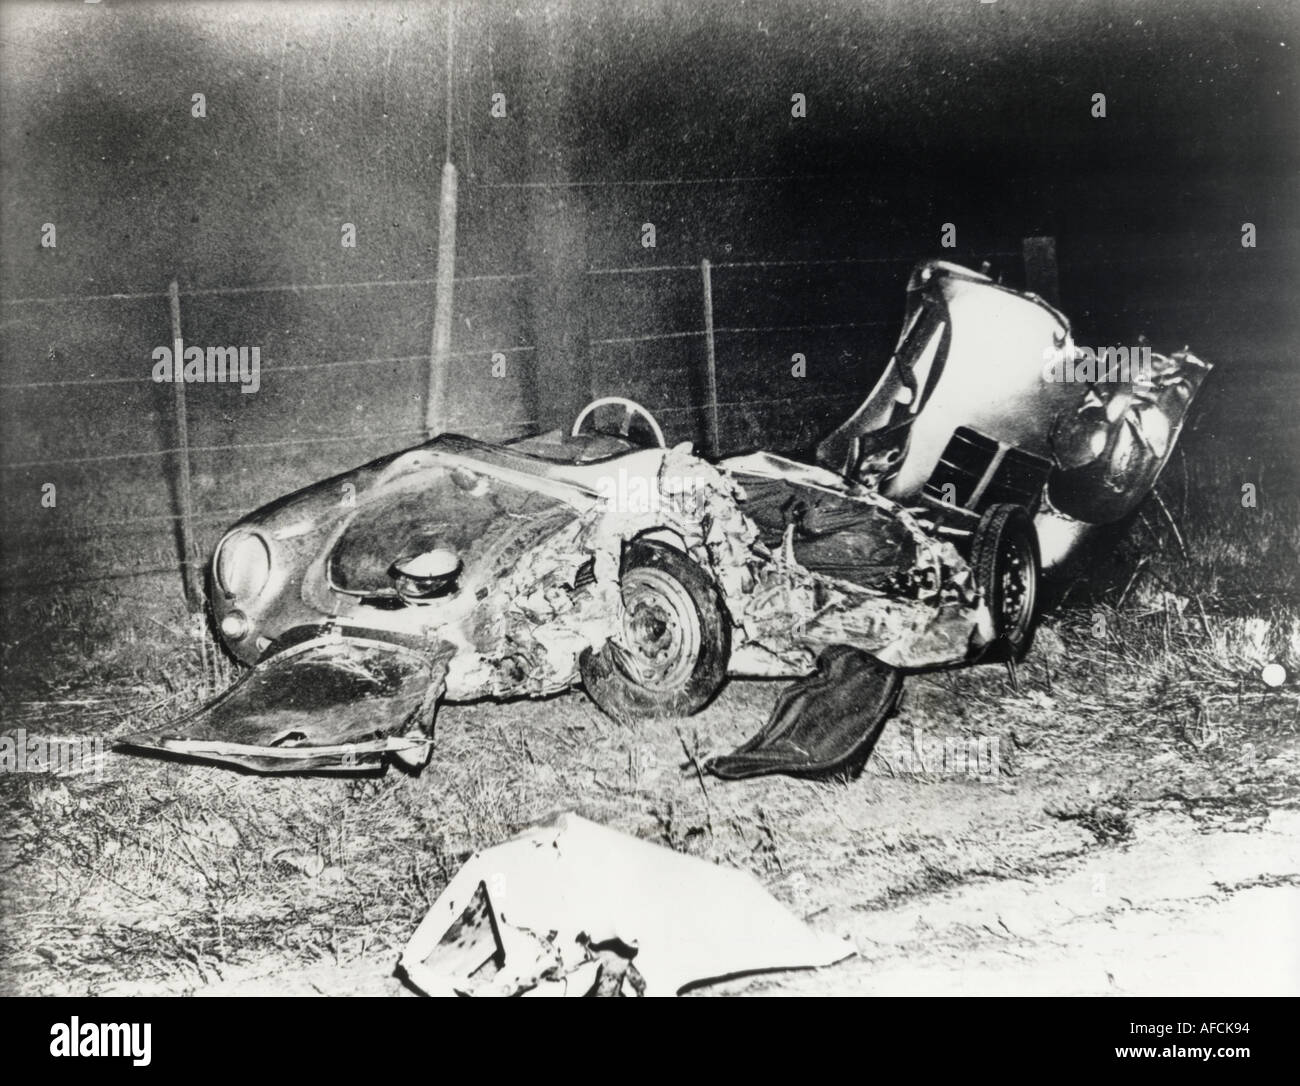 James Dean Died In This Porsche Spyder On 30 Septem Ber